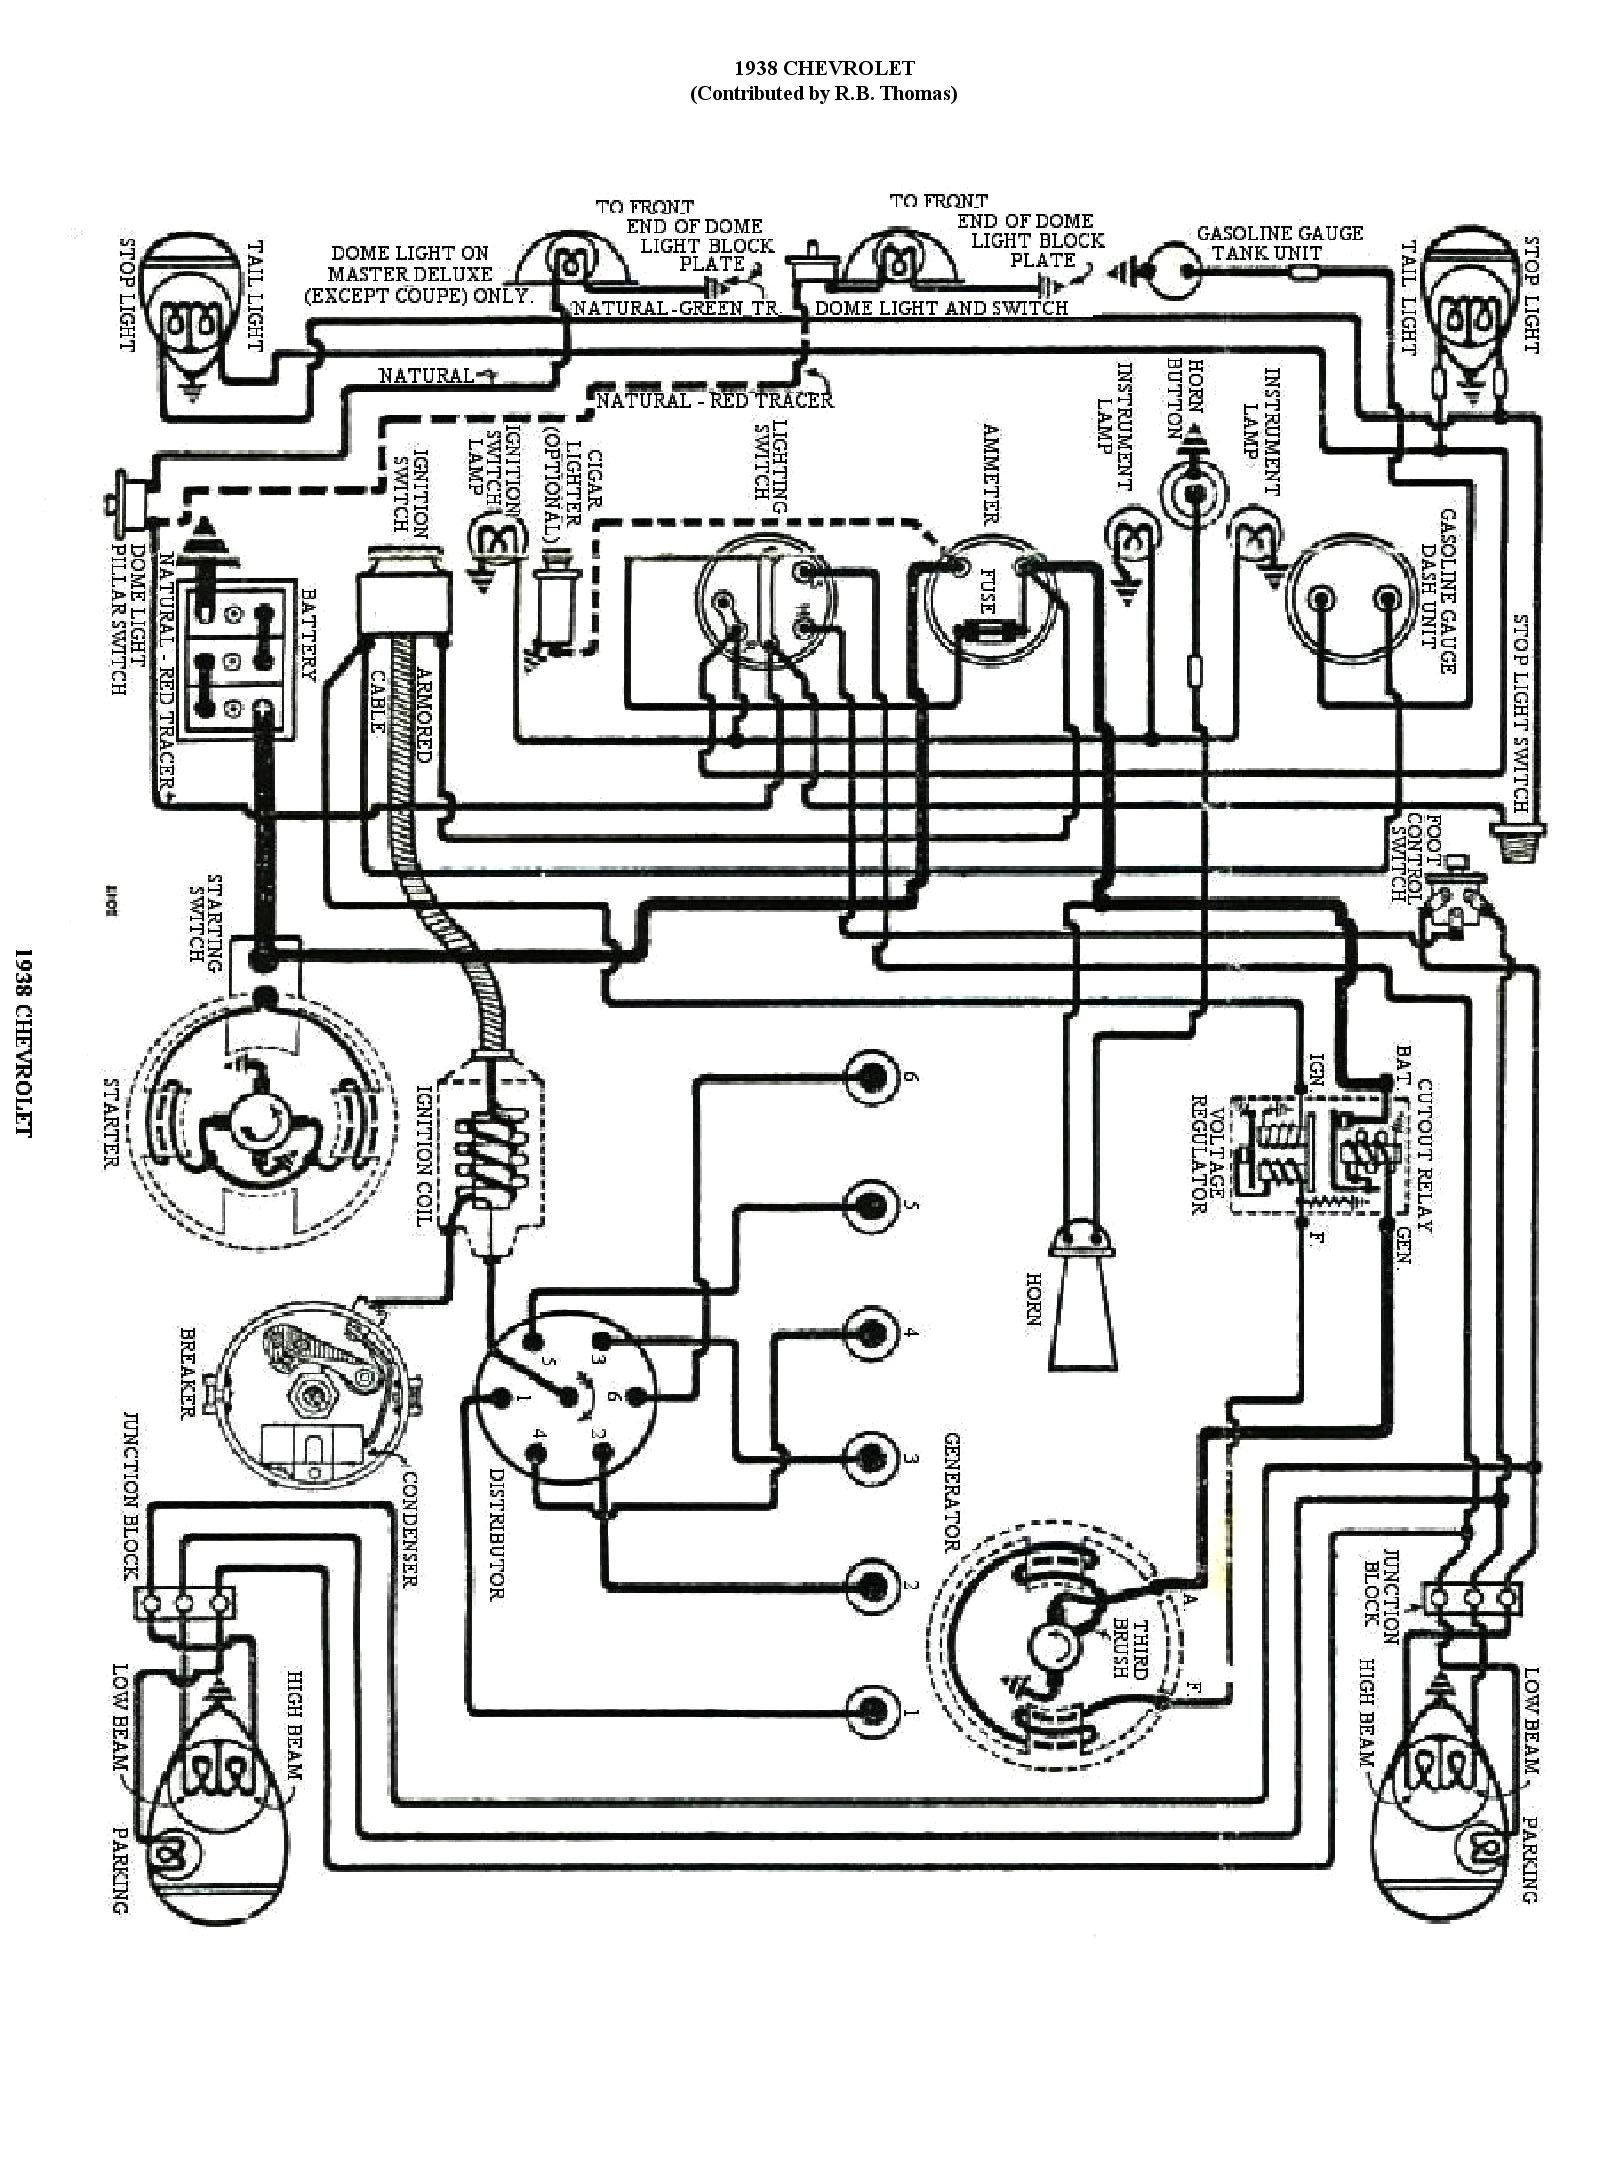 38wiring chevy wiring diagrams 6 volt wiring harness kits for old cars at honlapkeszites.co